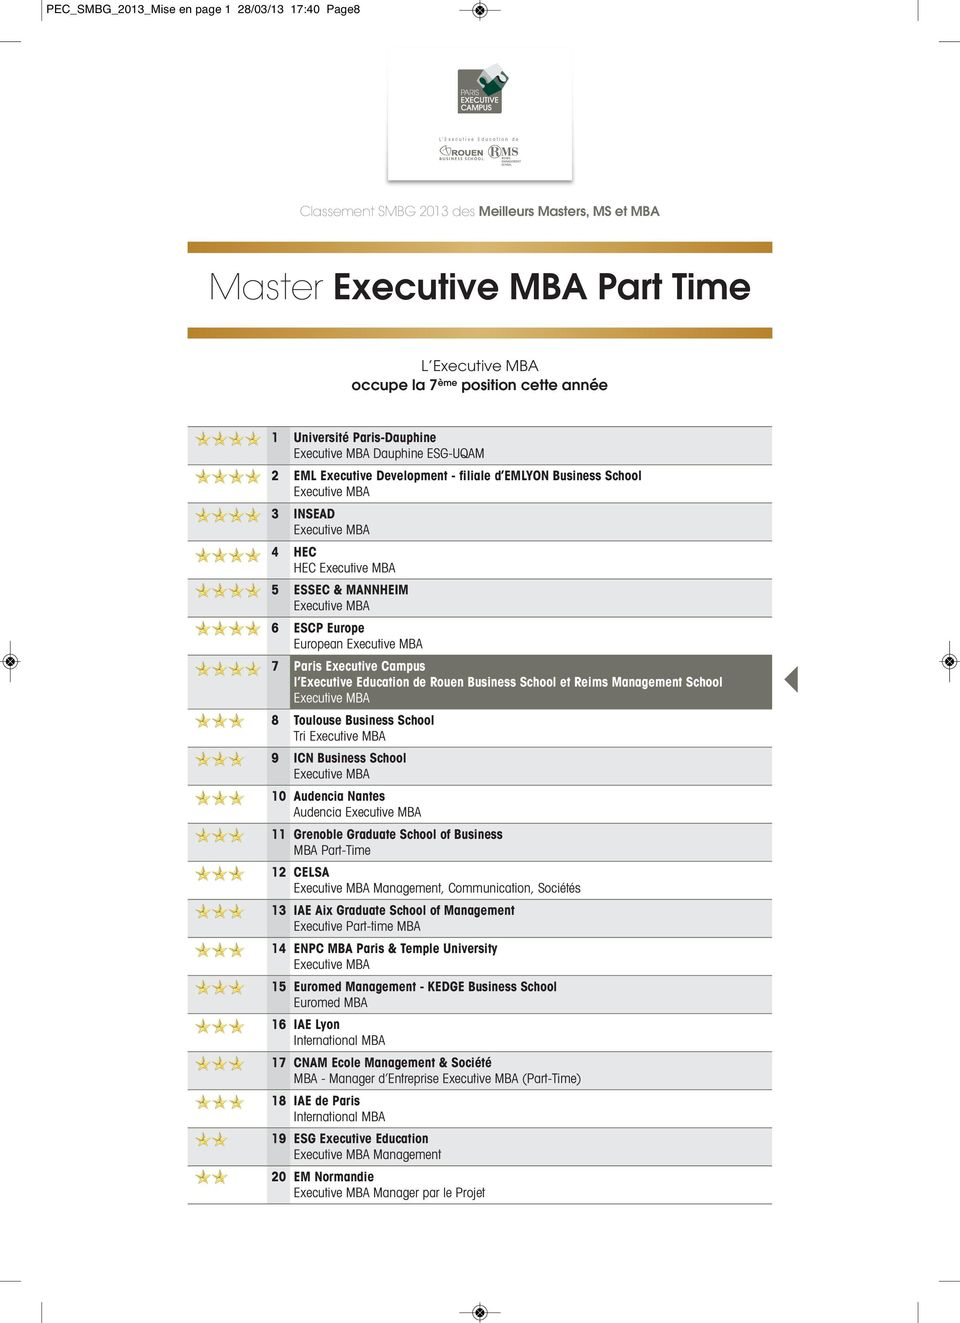 Graduate School of Business MBA Part-Time 12 CELSA Management, Communication, Sociétés 13 IAE Aix Graduate School of Management Executive Part-time MBA 14 ENPC MBA Paris & Temple University 15